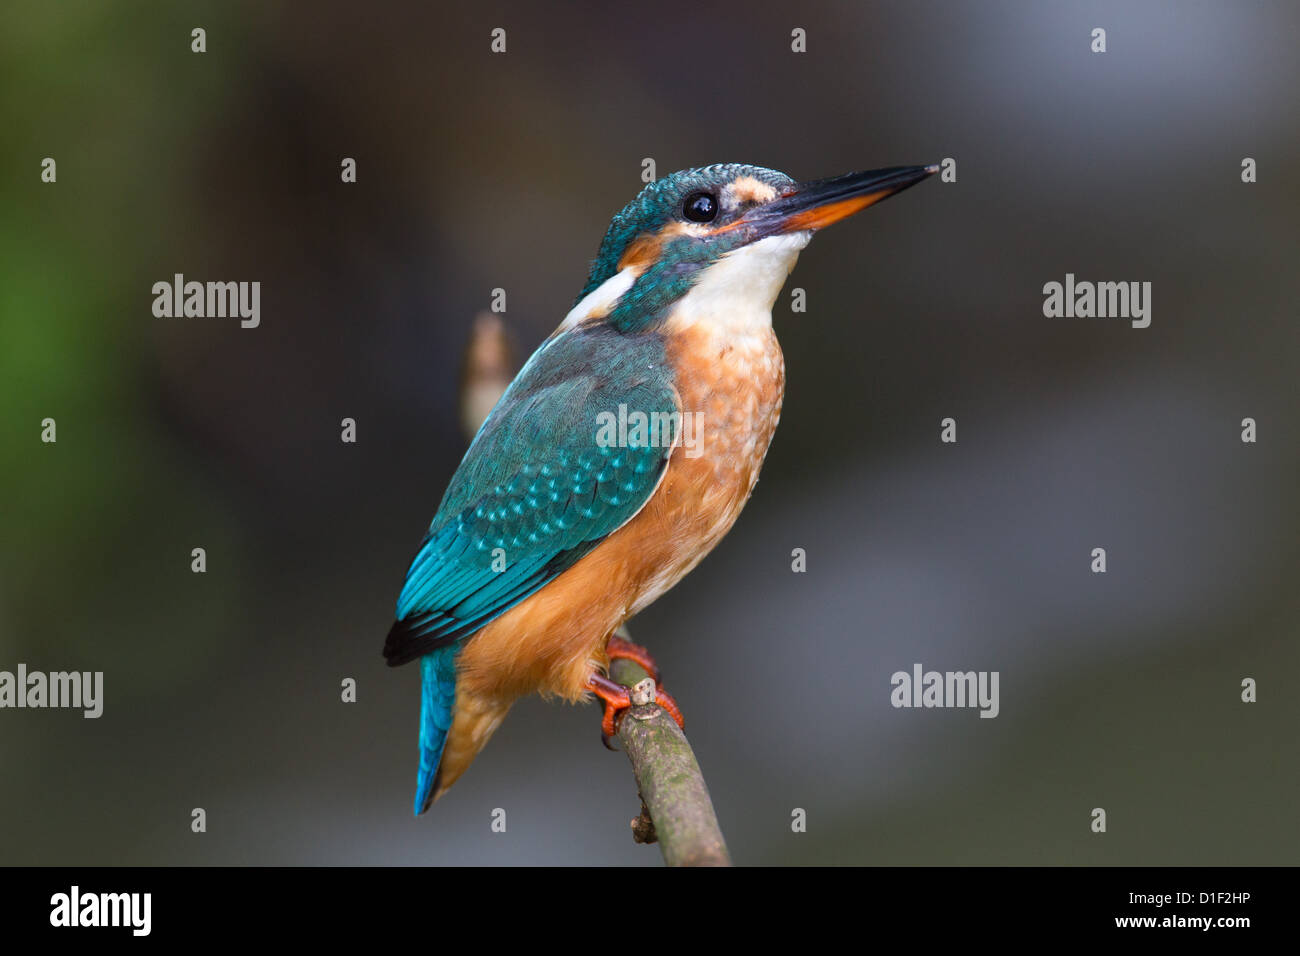 Common Kingfisher (Alcedo atthis) on a twig - Stock Image